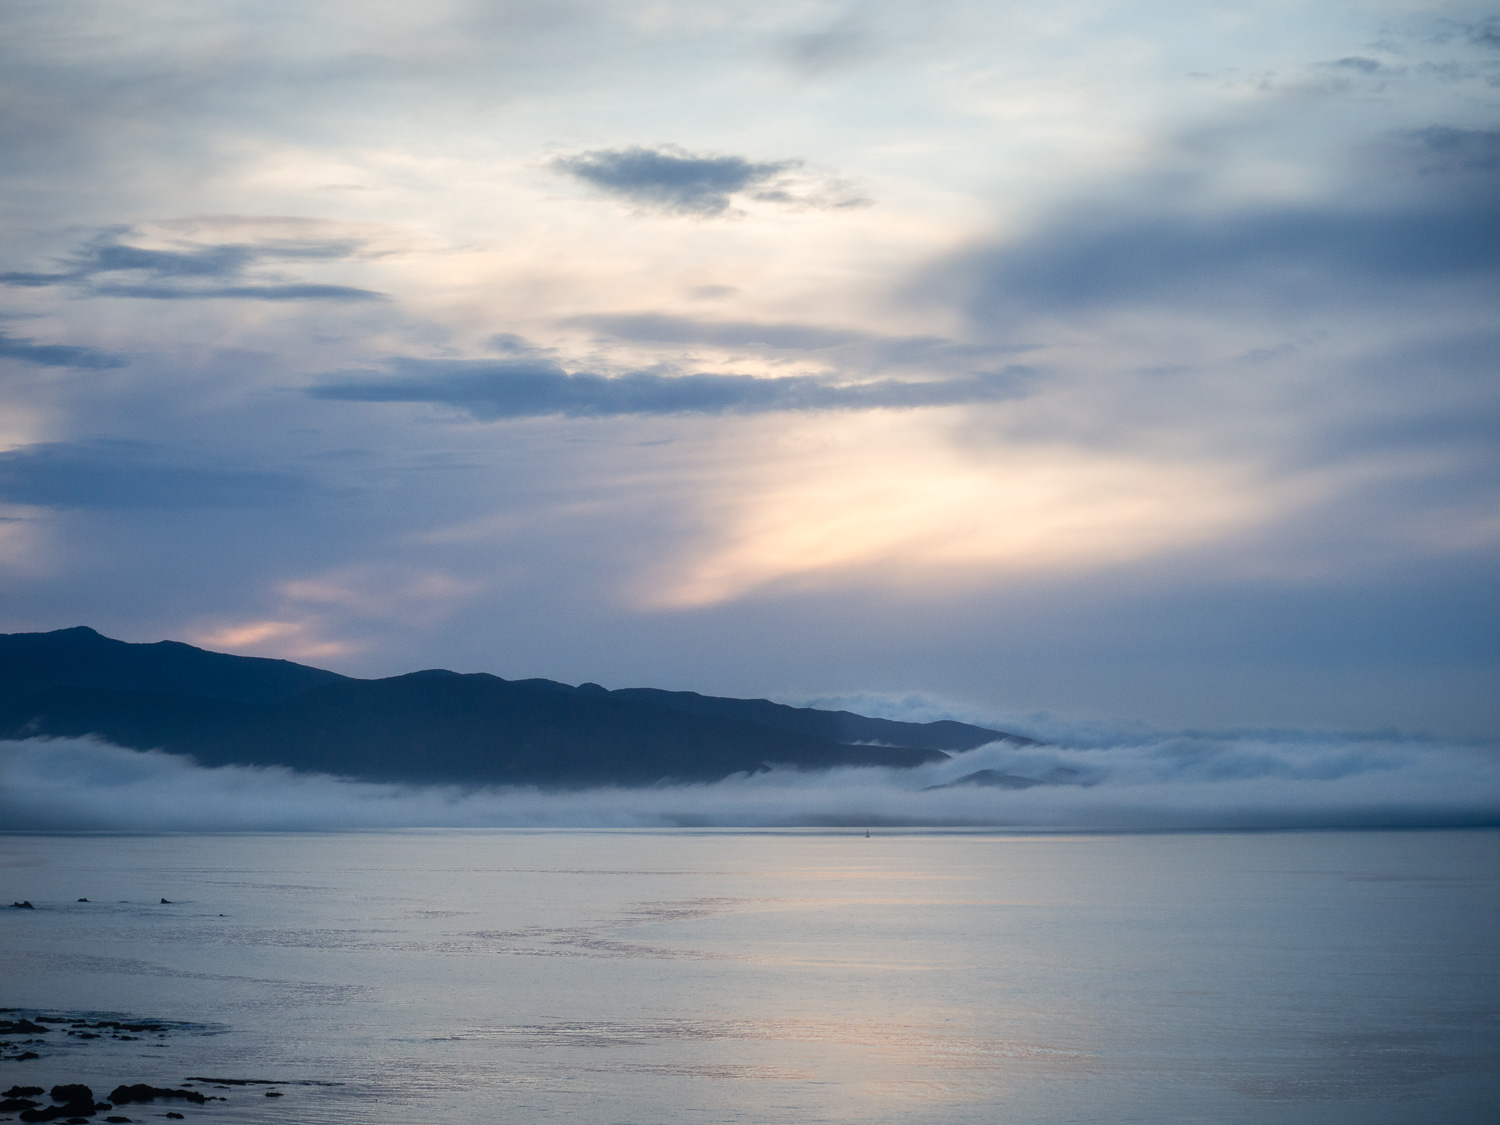 Looking toward the headland extending from the Orongorongo range, on Wellington's south coast.  The light of sunrise is reflected in the calm water, but the lighthouse beyond is obscured by the low lying cloud.